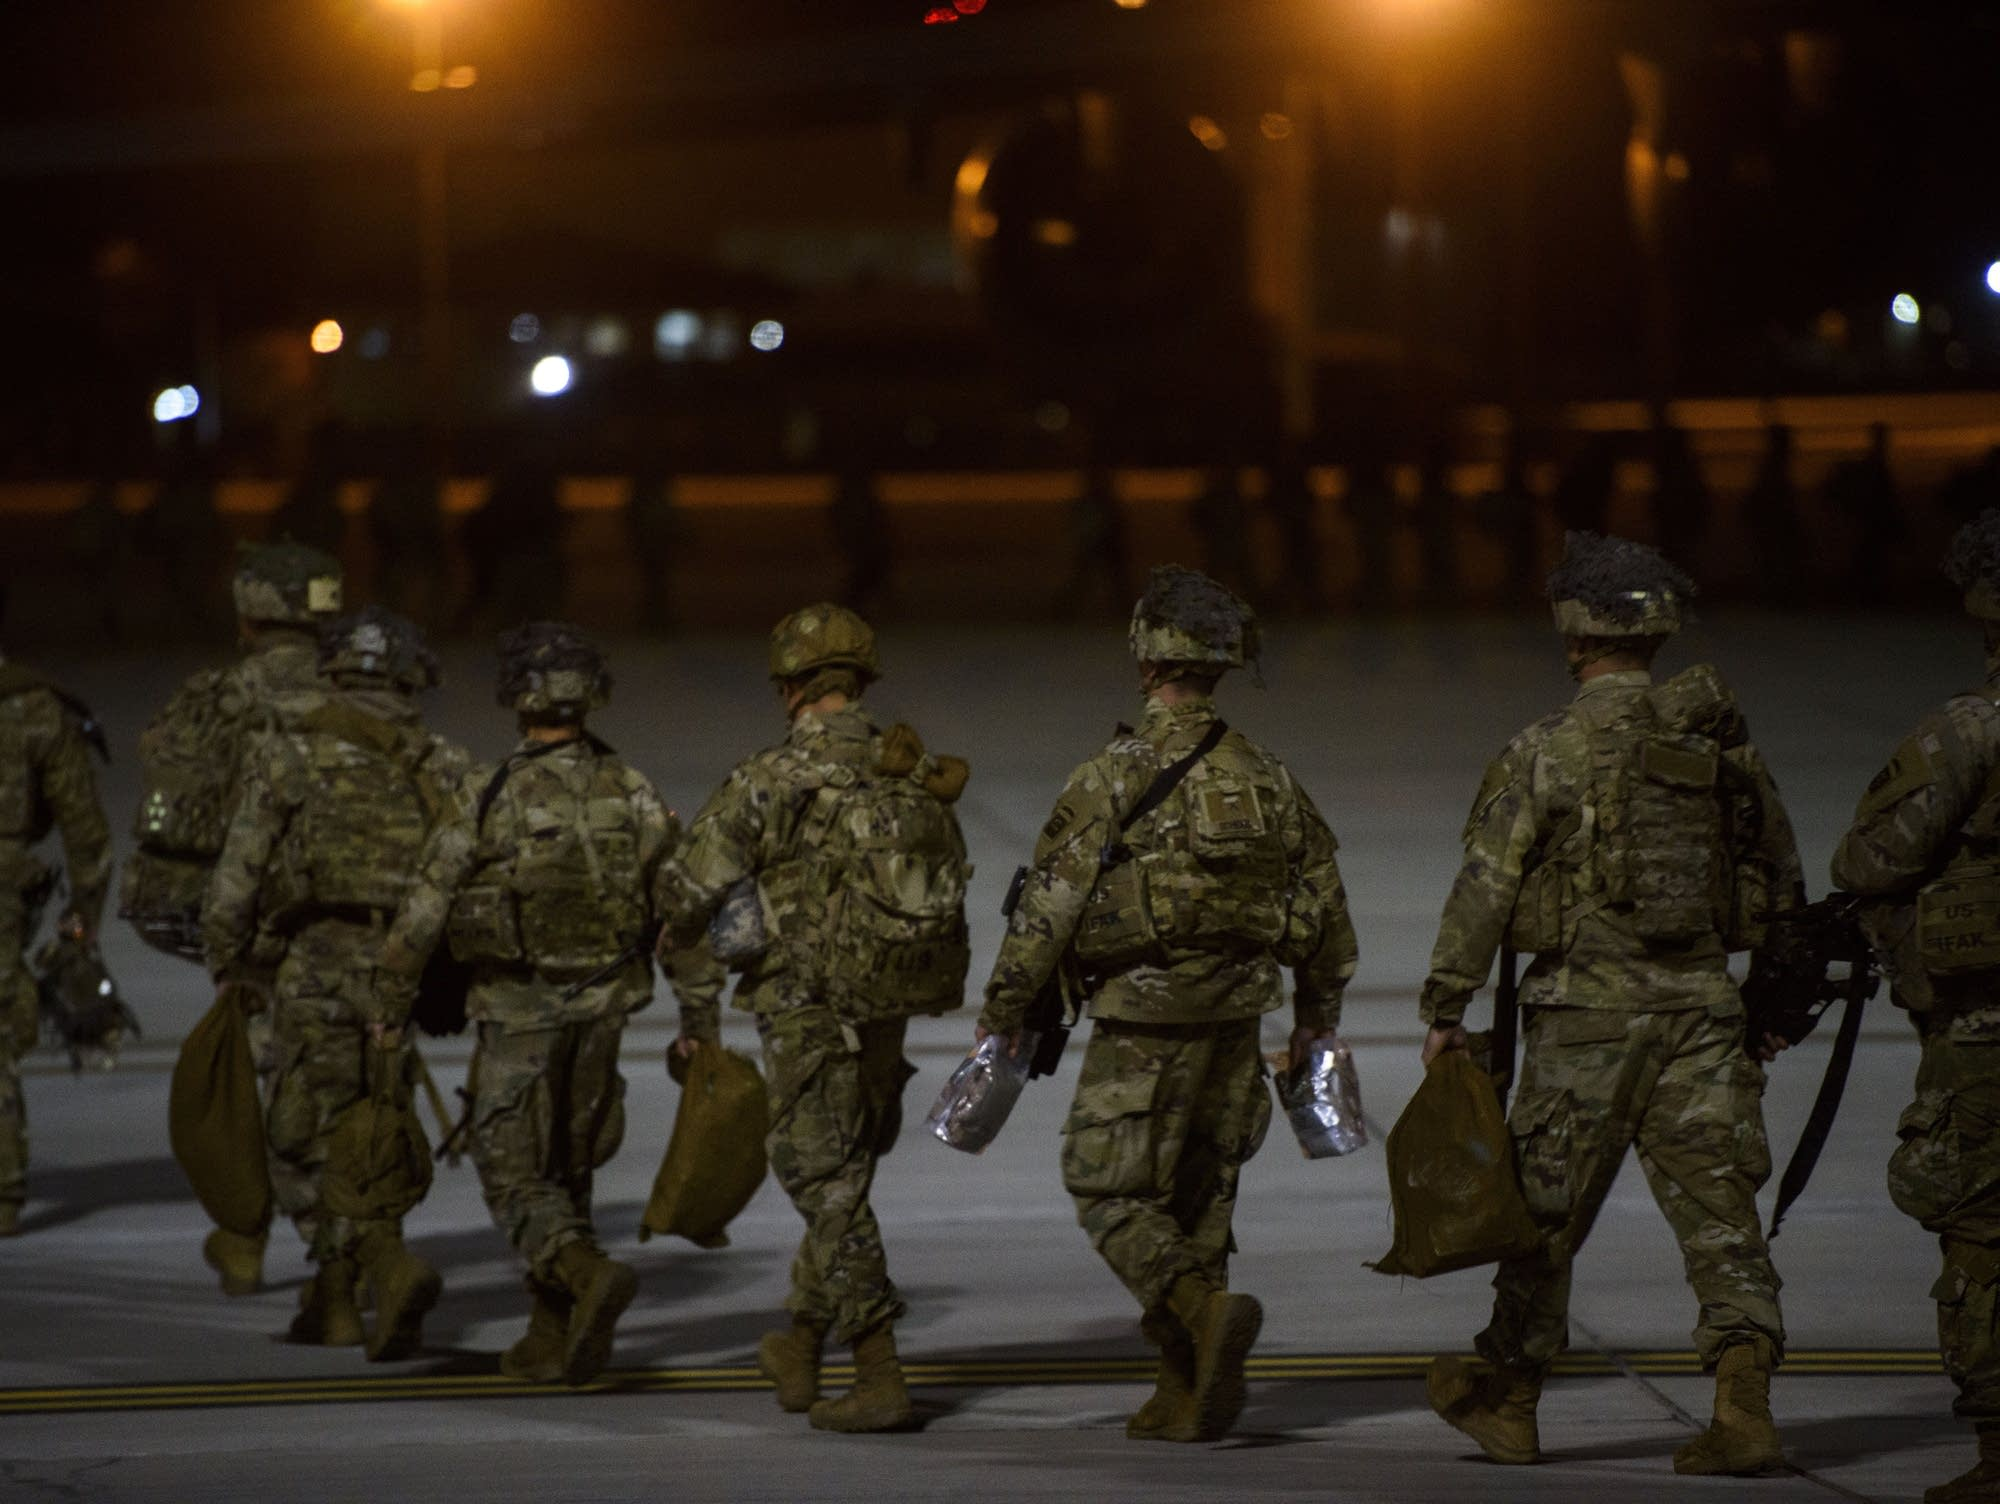 US Paratroopers Deploy in Response to the increased threat Levels – Jan 01 2020